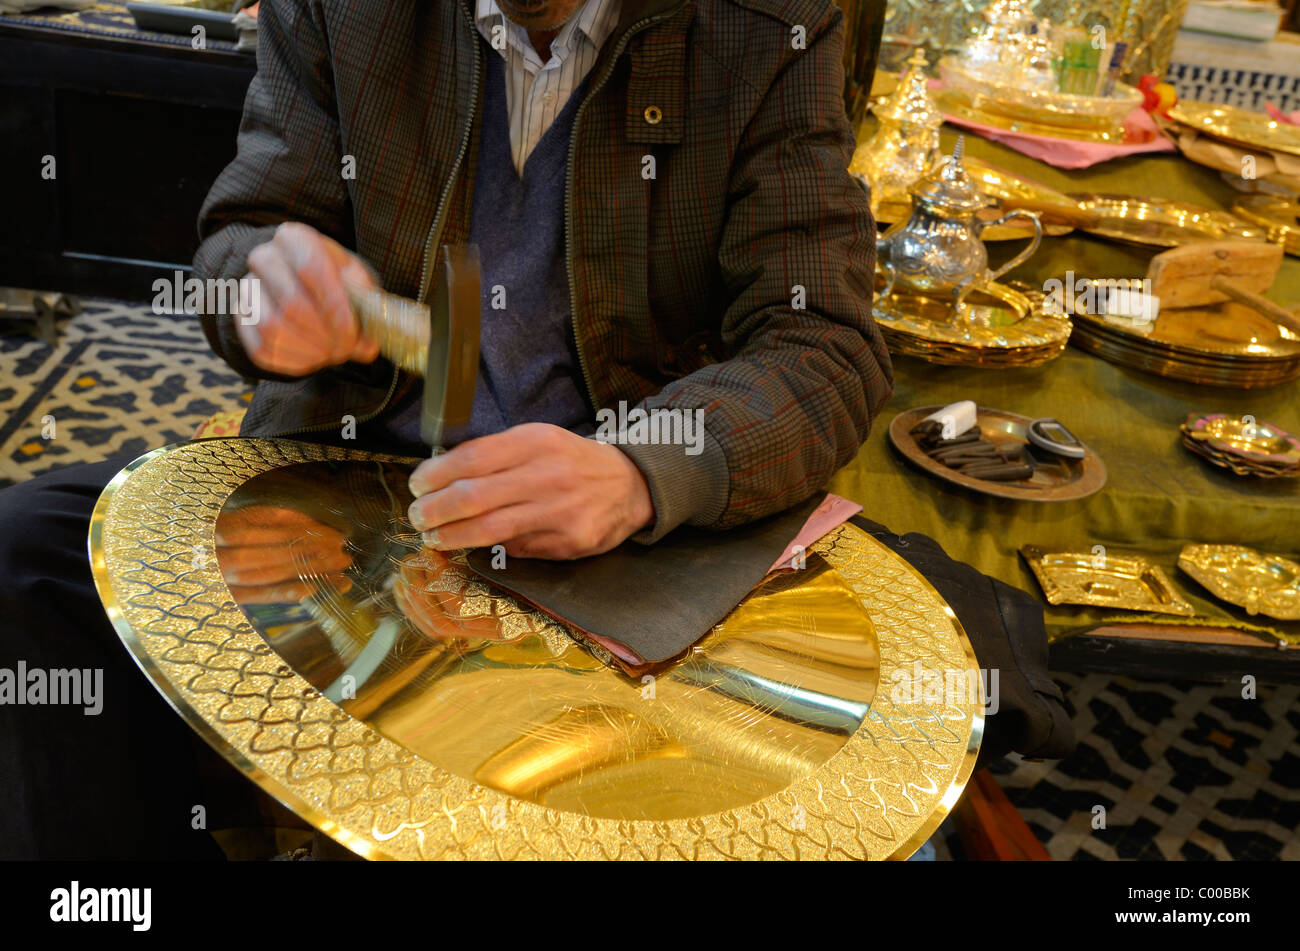 Worker with hammer and chisel engraving complex patterns on brass plate in Fes el Bali Fez Morocco - Stock Image